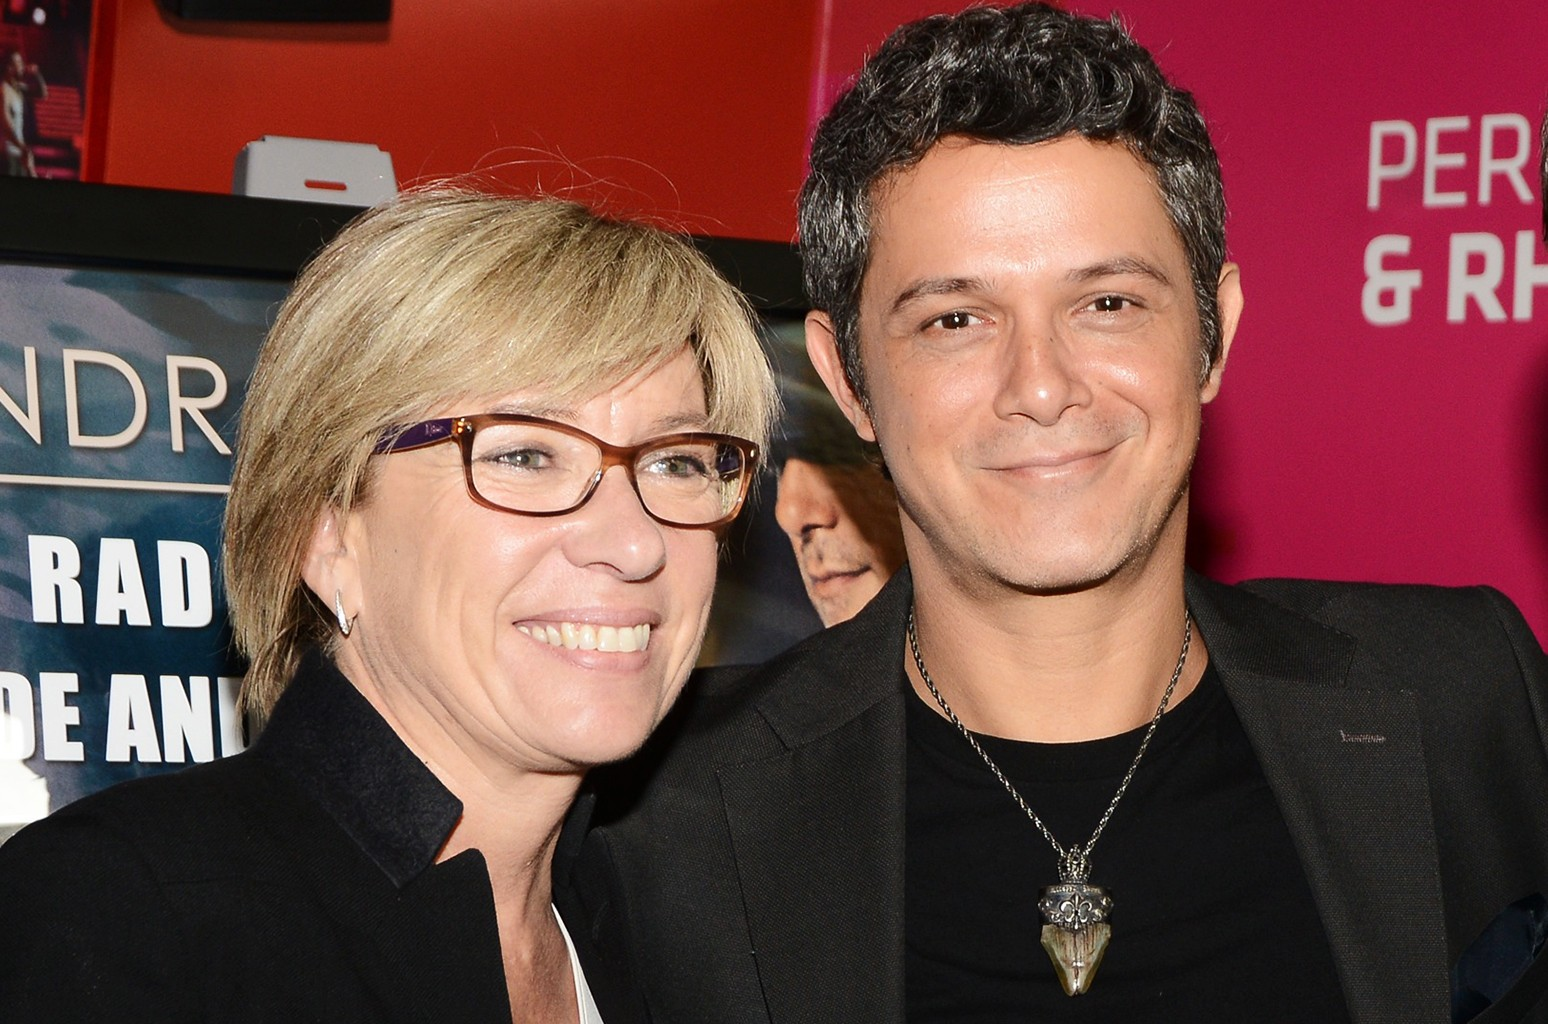 Rosa Lagarrigue and Alejandro Sanz at The Grammy Museum